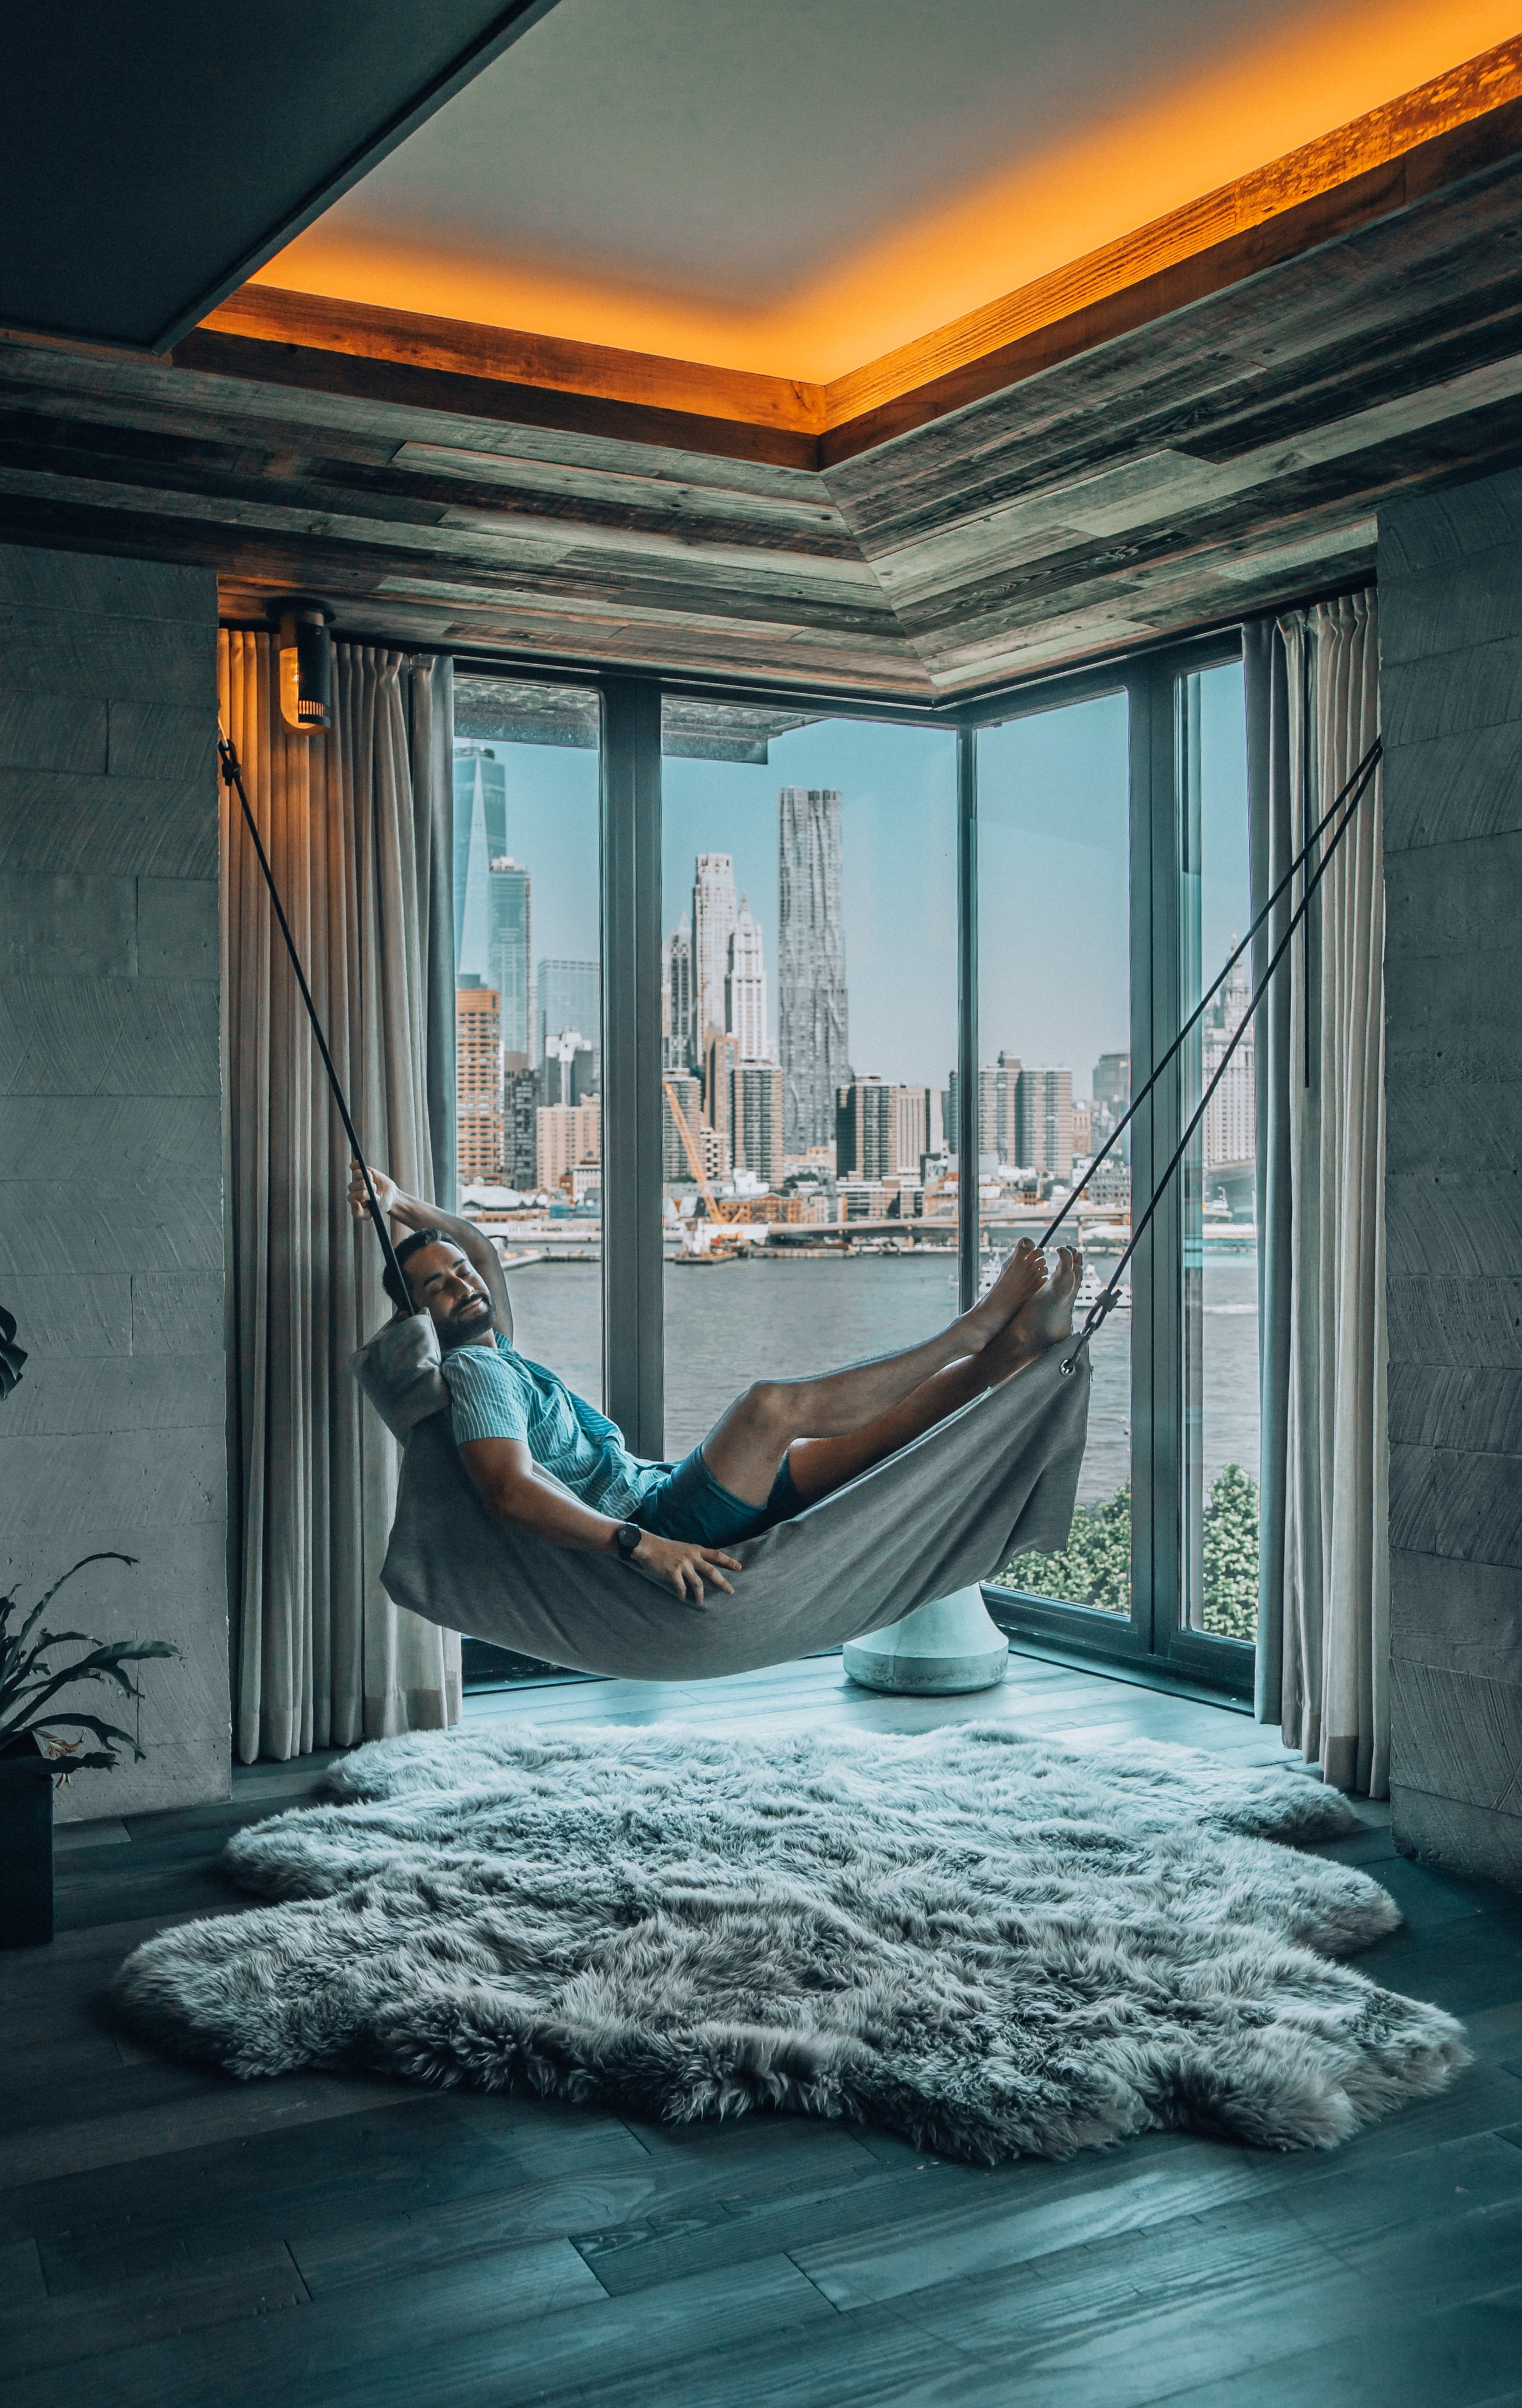 One of the cozy corners of the impressive Residence at 1 Hotel Brooklyn Bridge.